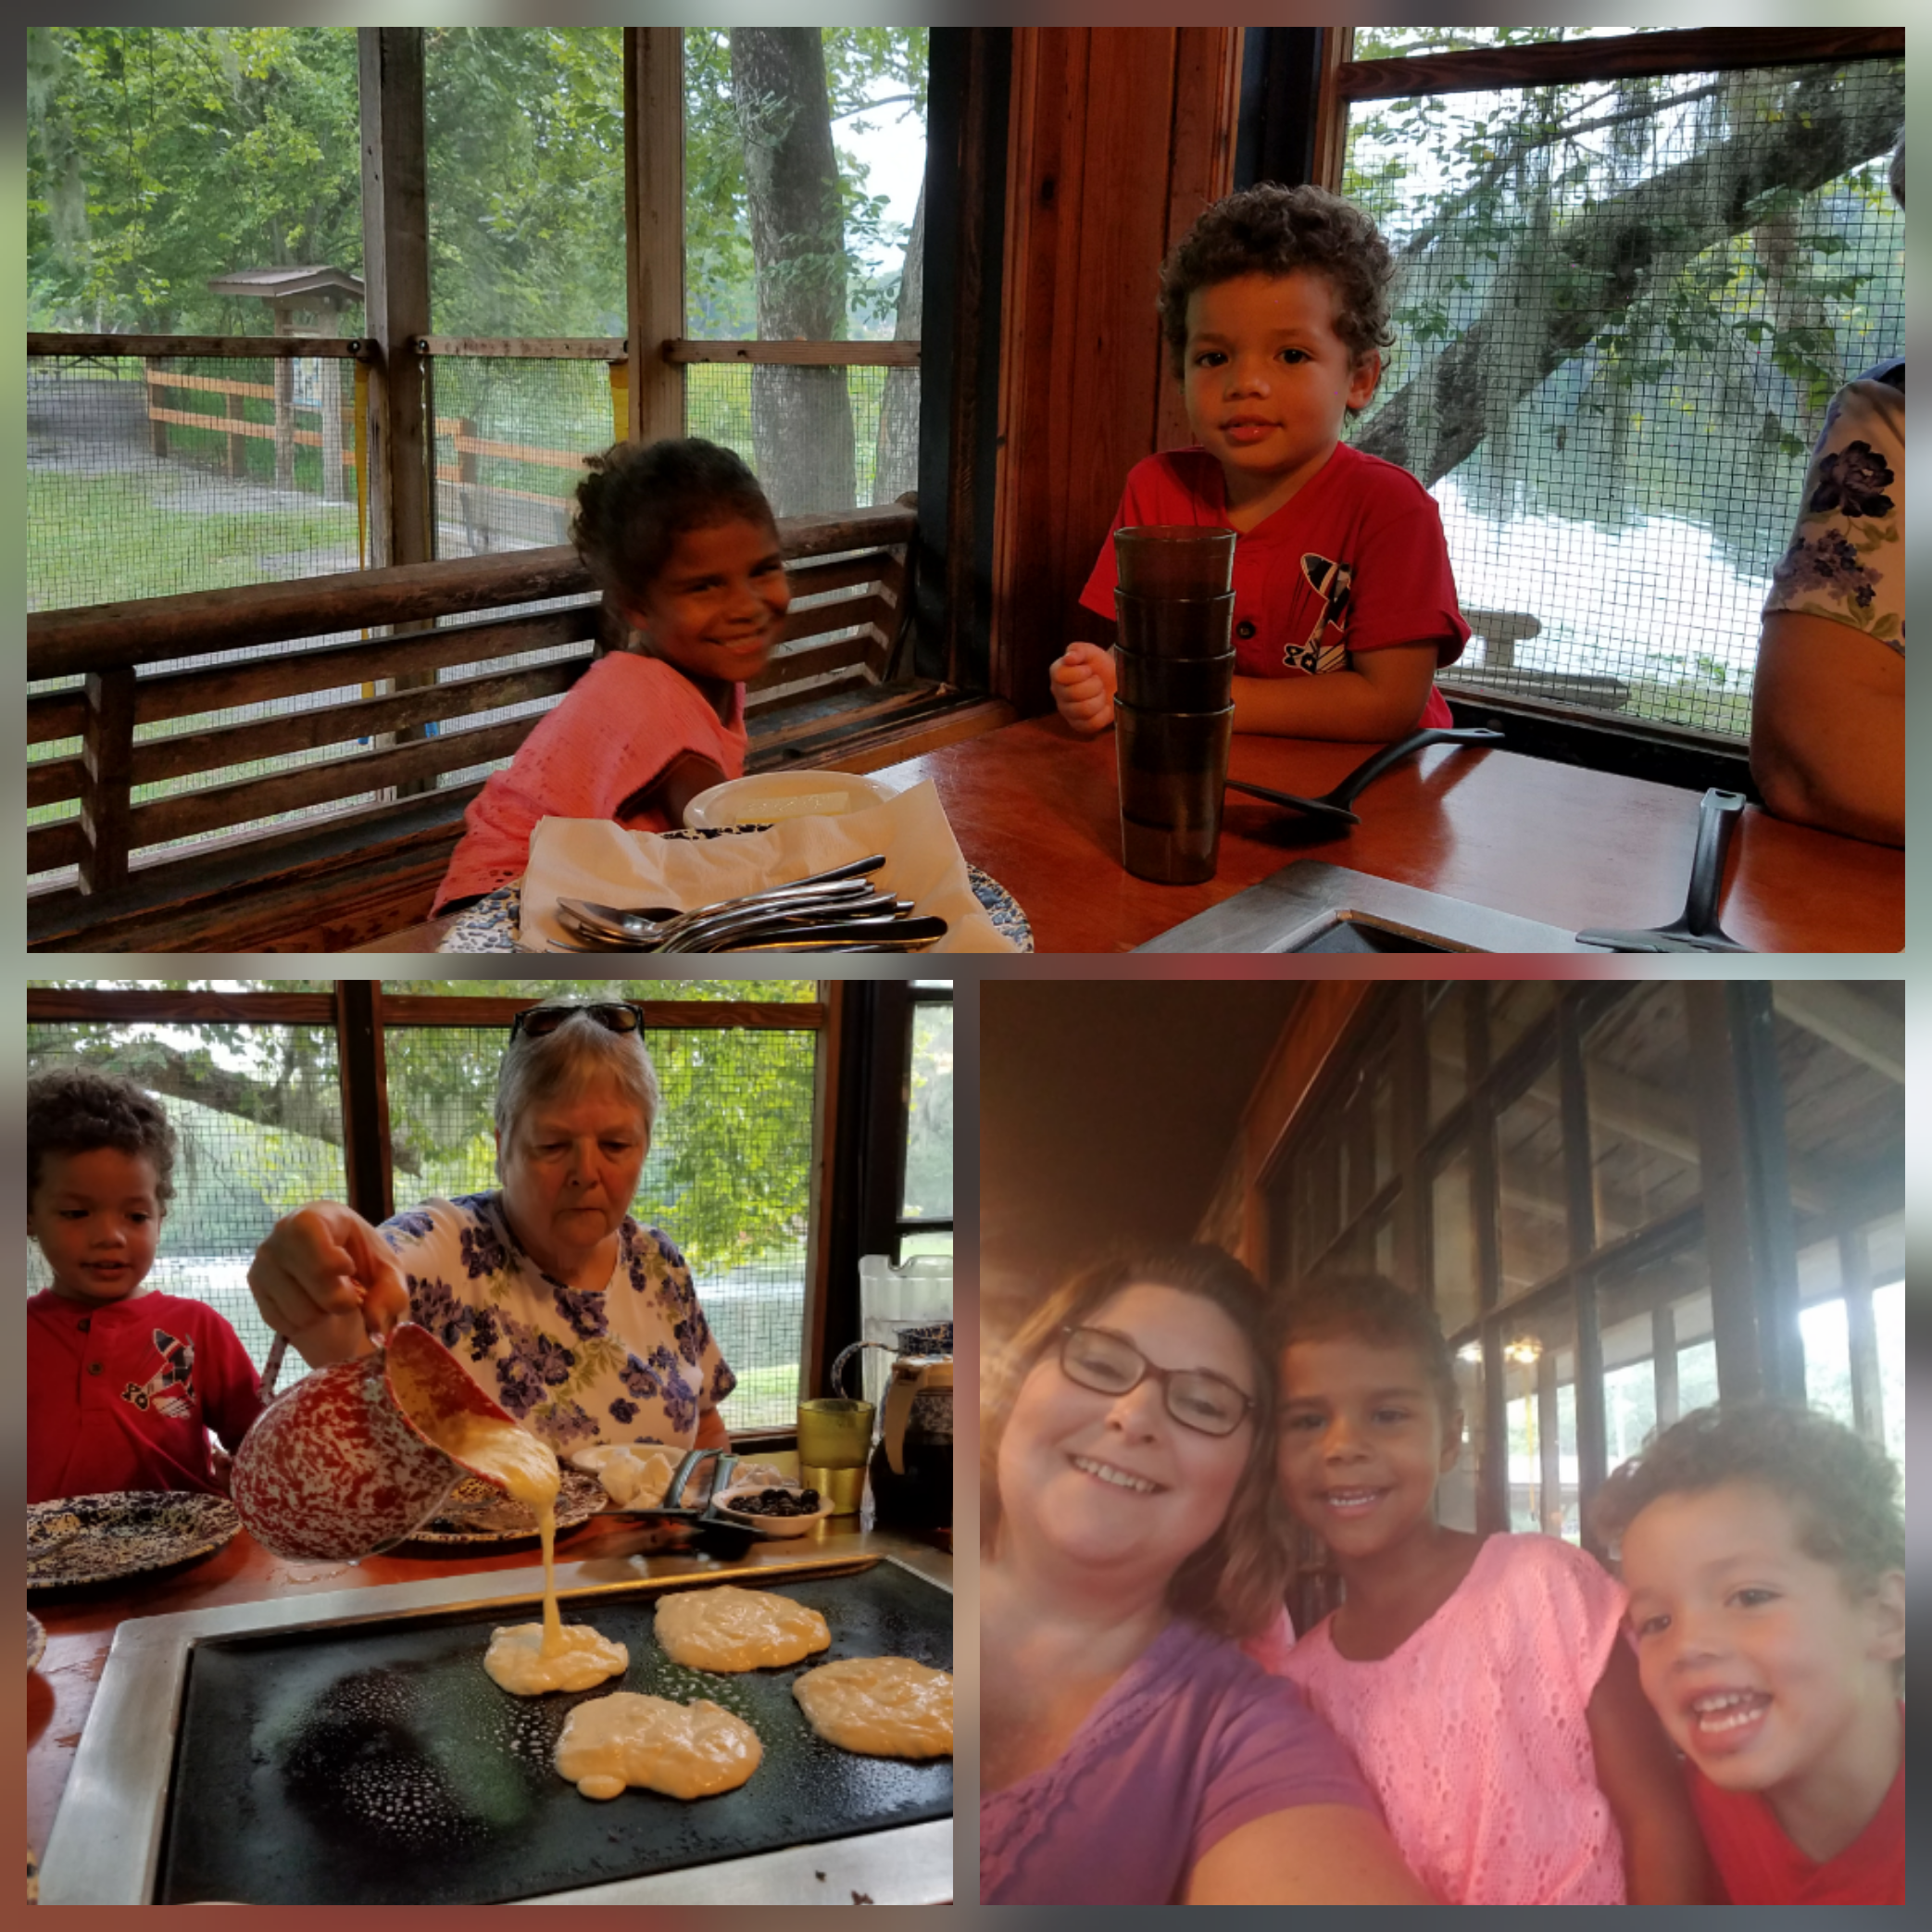 Pancakes at Old Spanish Sugar Mill Restaurant